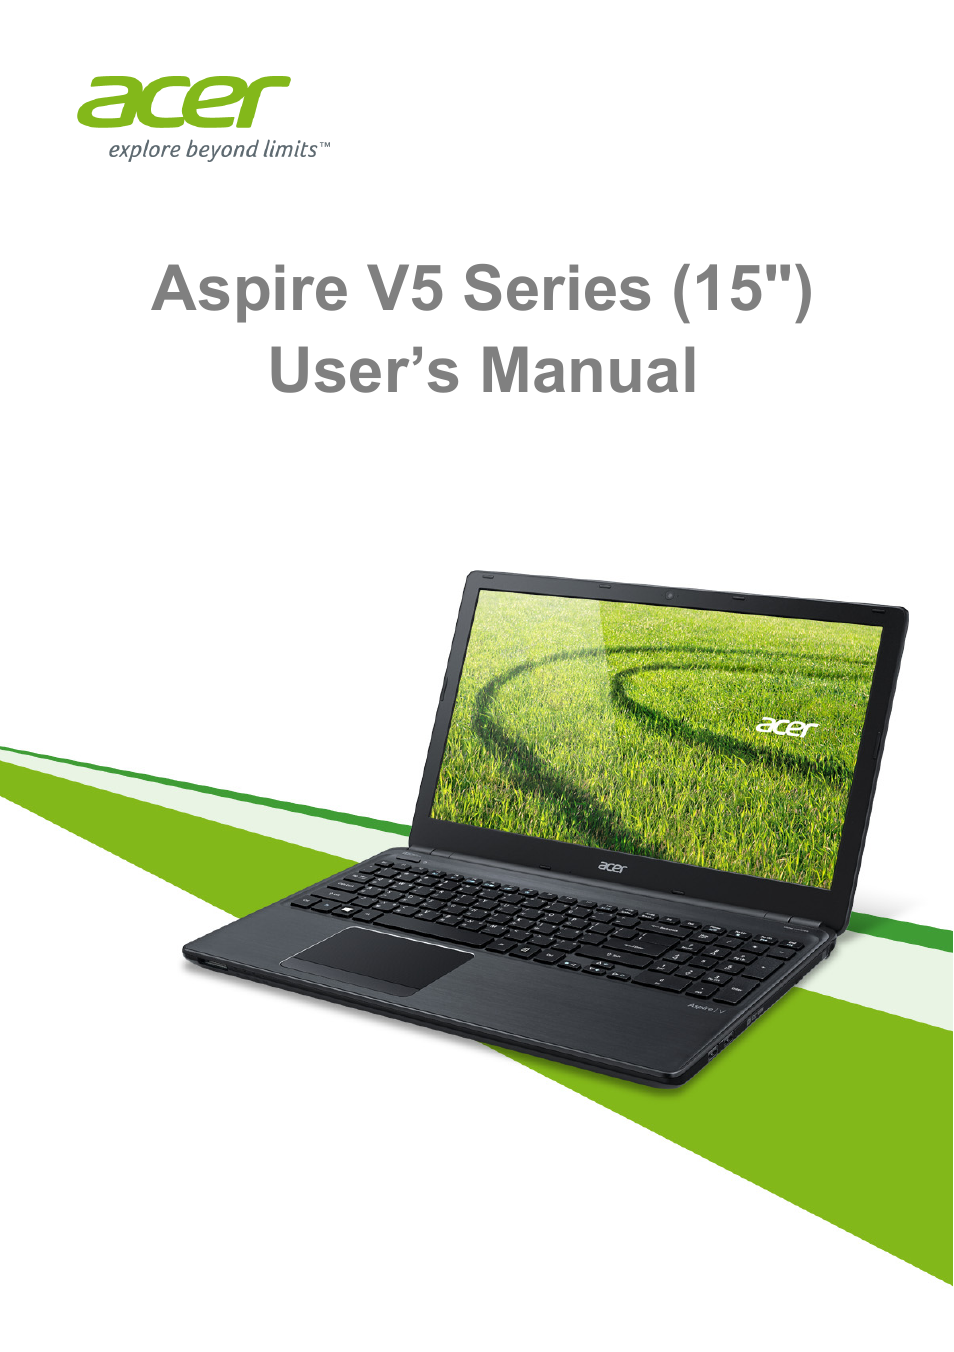 acer aspire v5 561g user manual 85 pages also for Aspire One ZG5 Hard Drive Acer Aspire One Manual PDF